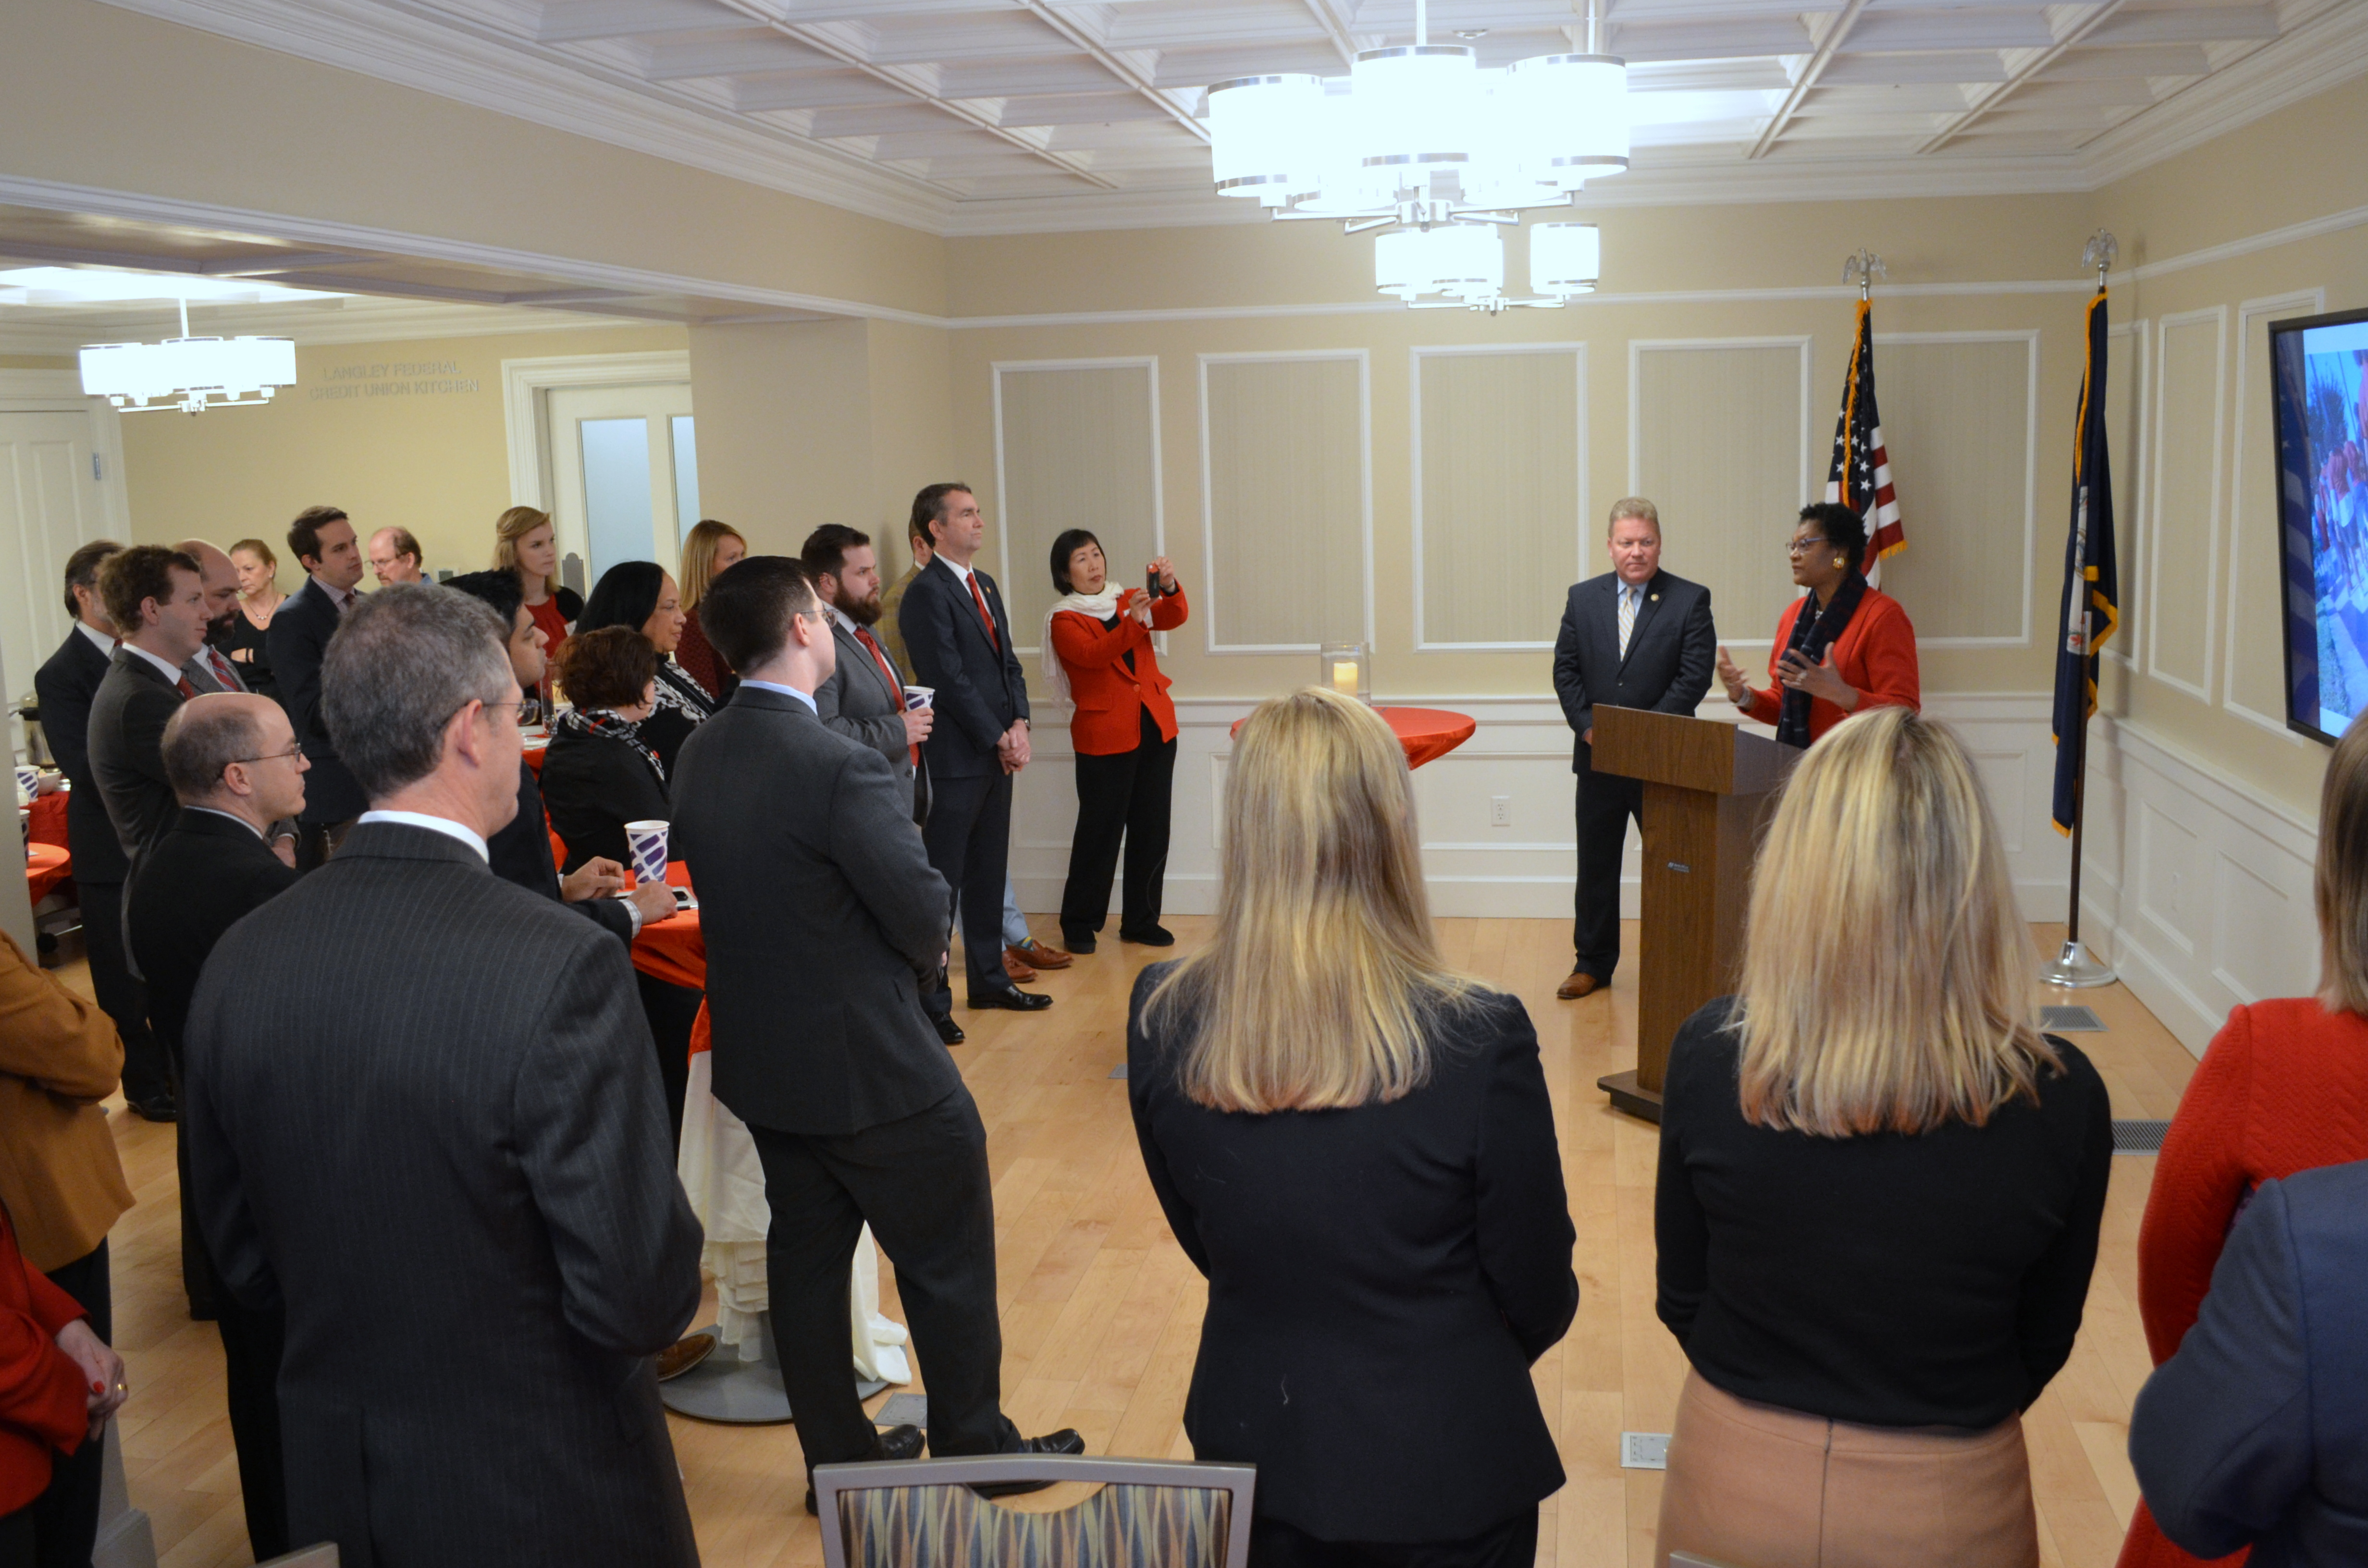 Senator Bill Stanley and Delegate Delores McQuinn before AHA volunteers, board members, and coalition partners as Governor Raleigh Northam, Secretary Health and Human Resources Dr. Daniel Carey (cardiologist), and other elected officials listen in about the need for the Virginia Grocery Investment Fund.